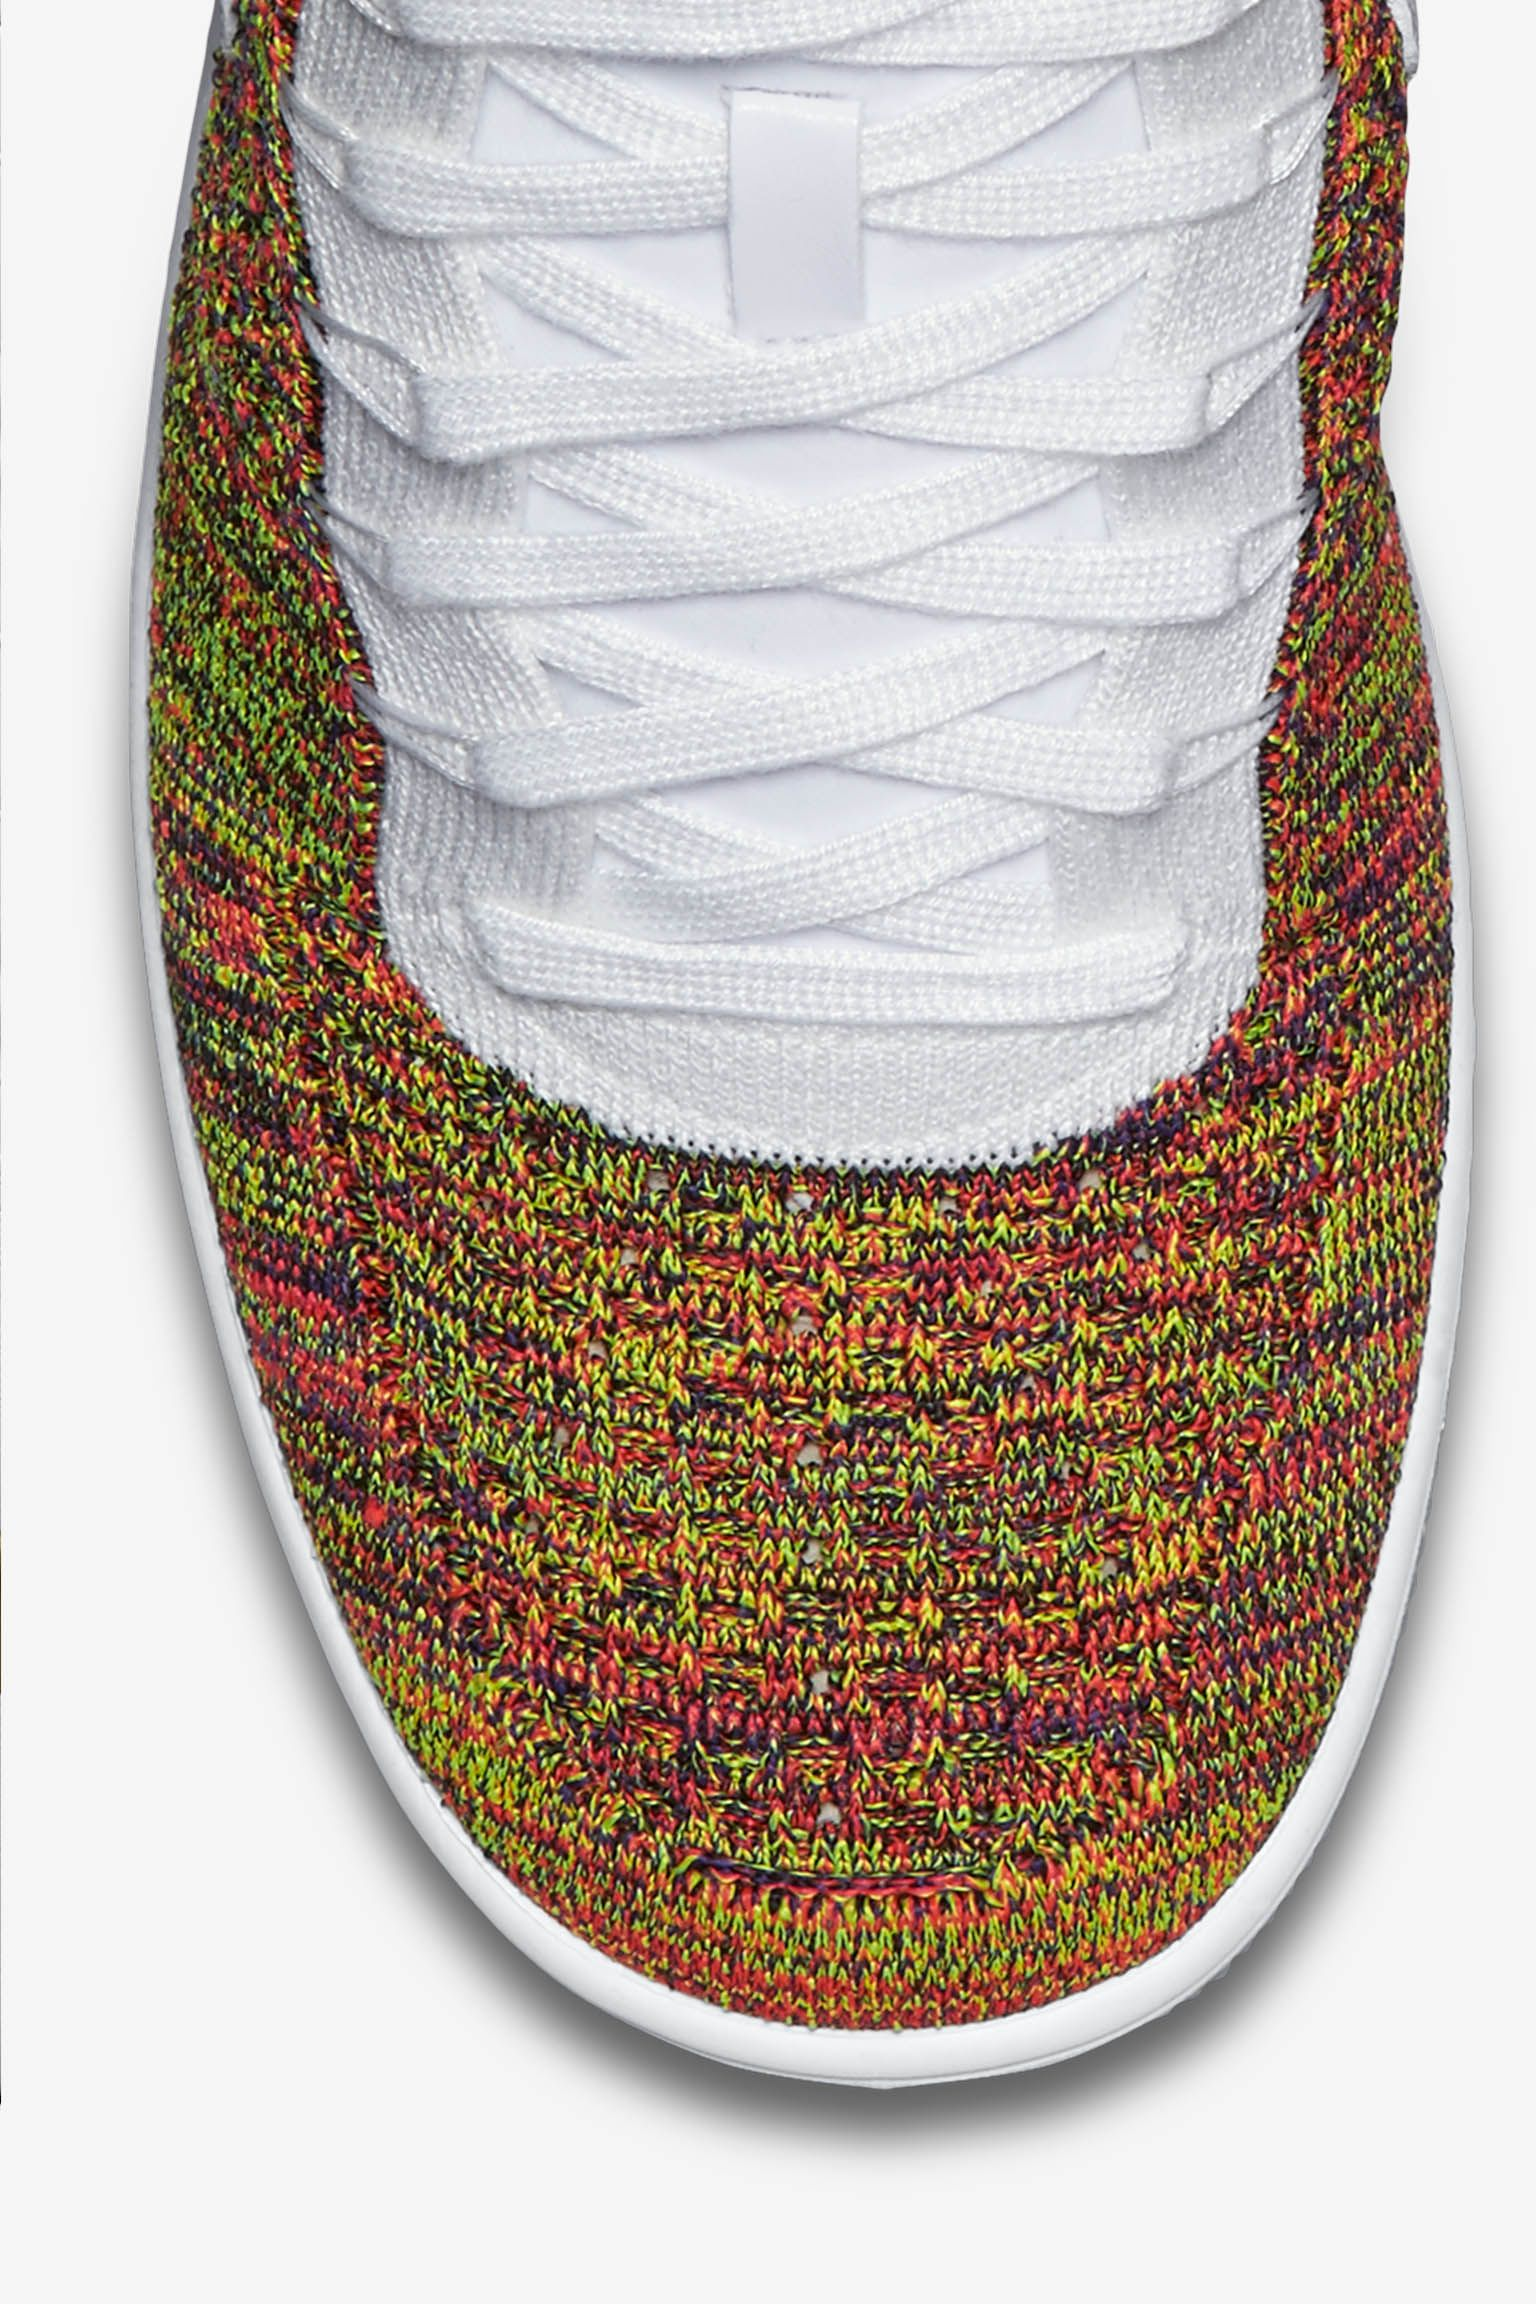 Nike Air Force 1 Ultra Flyknit 'White & Multicolor' Release Date